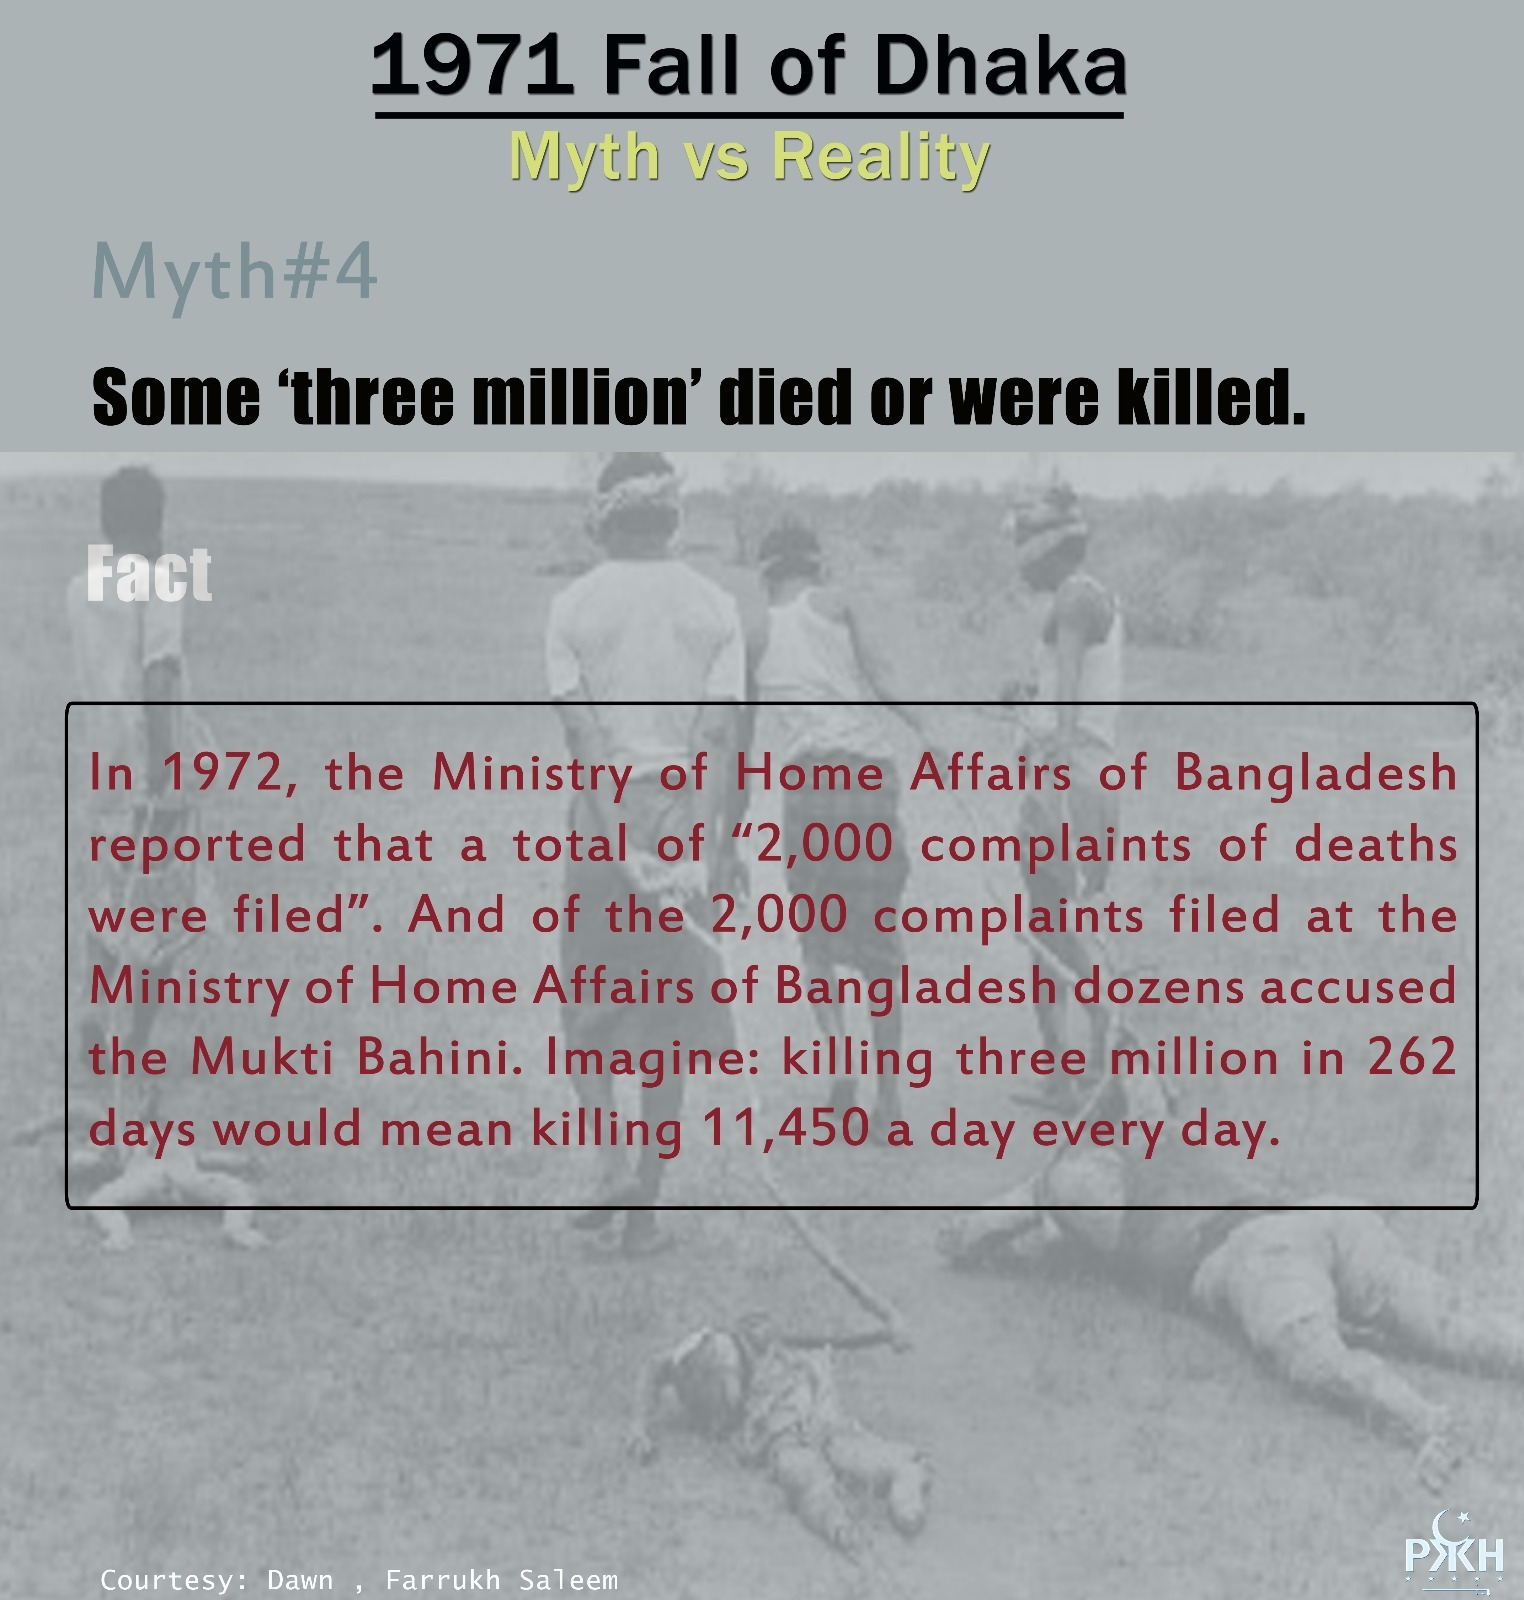 1971 fall of dhaka, myth vs reality. myth4